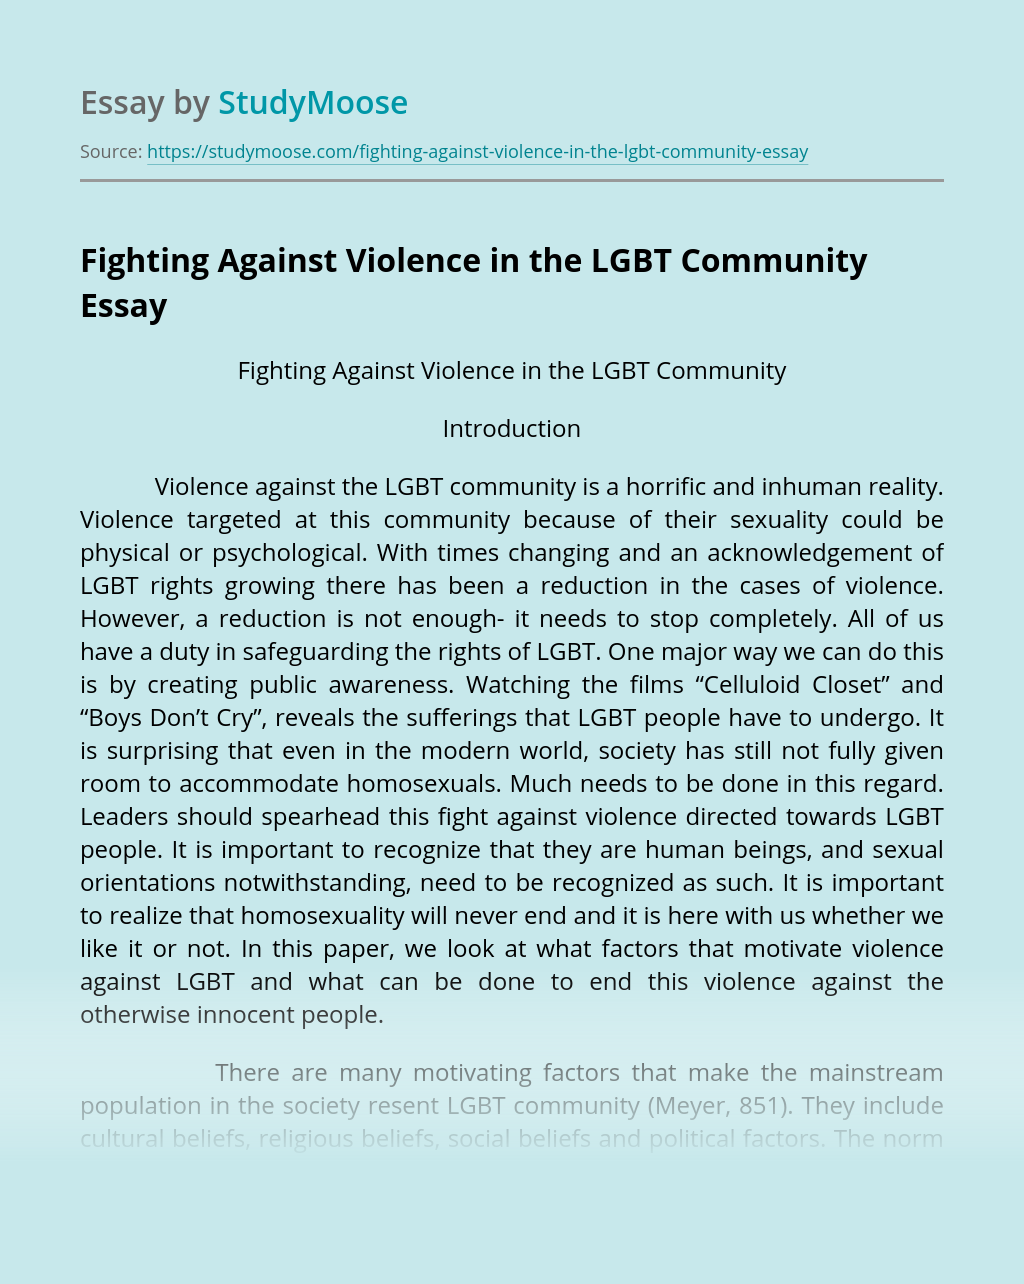 Fighting Against Violence in the LGBT Community